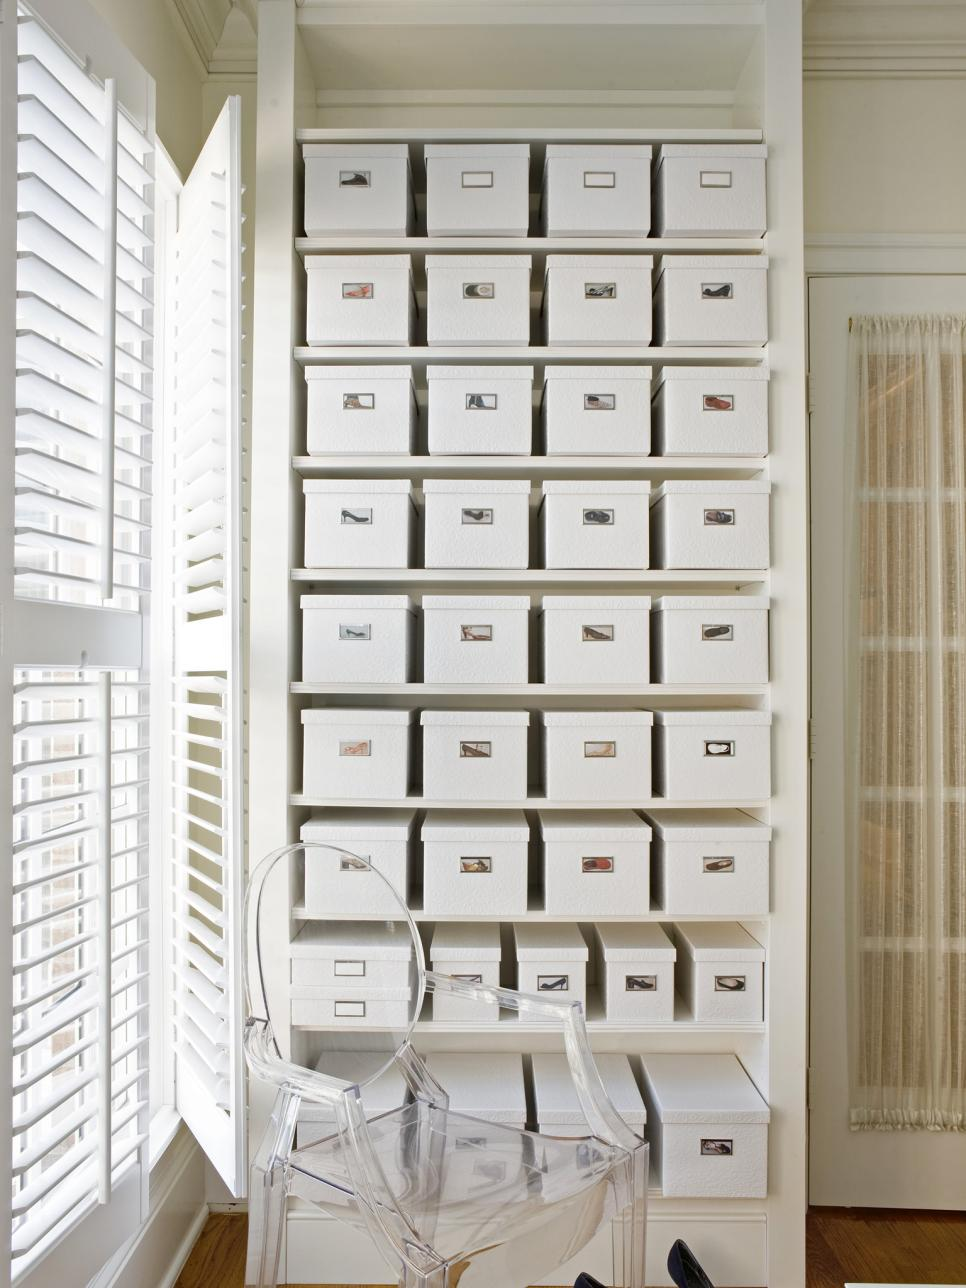 Shoe box storage ideas